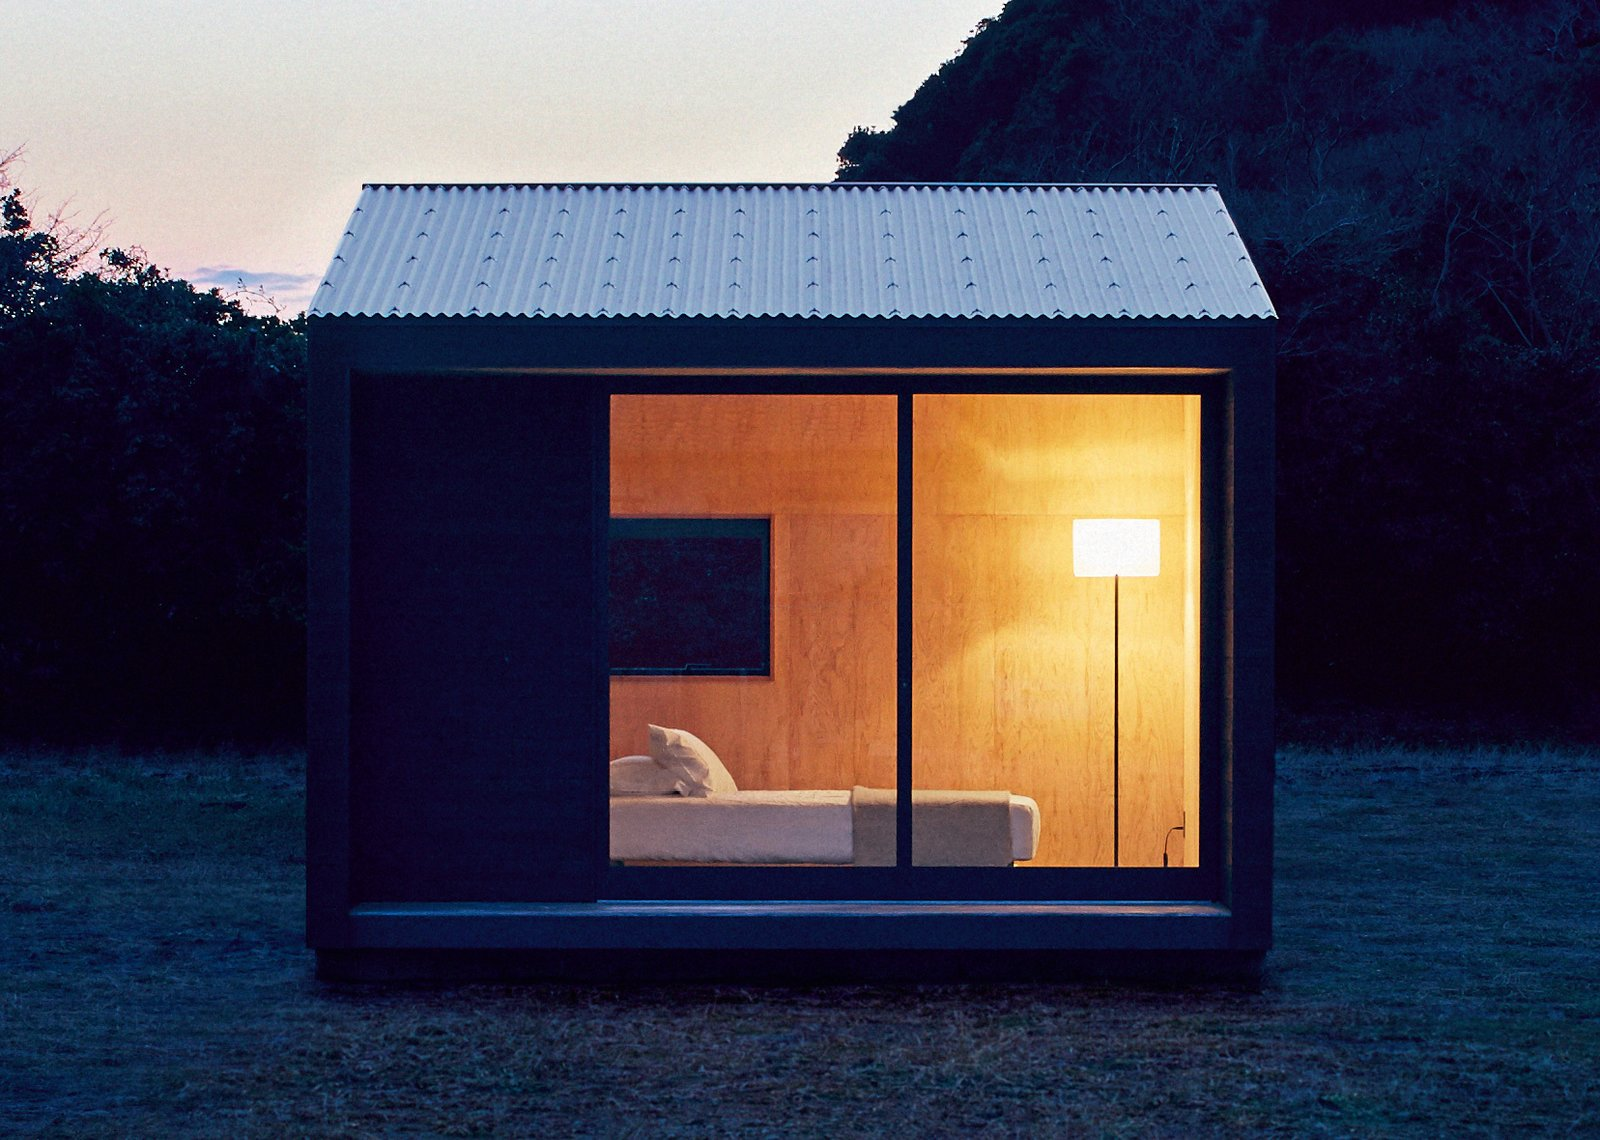 Photo 7 of 7 in The Muji Hut is a Masterful Take on Minimalism